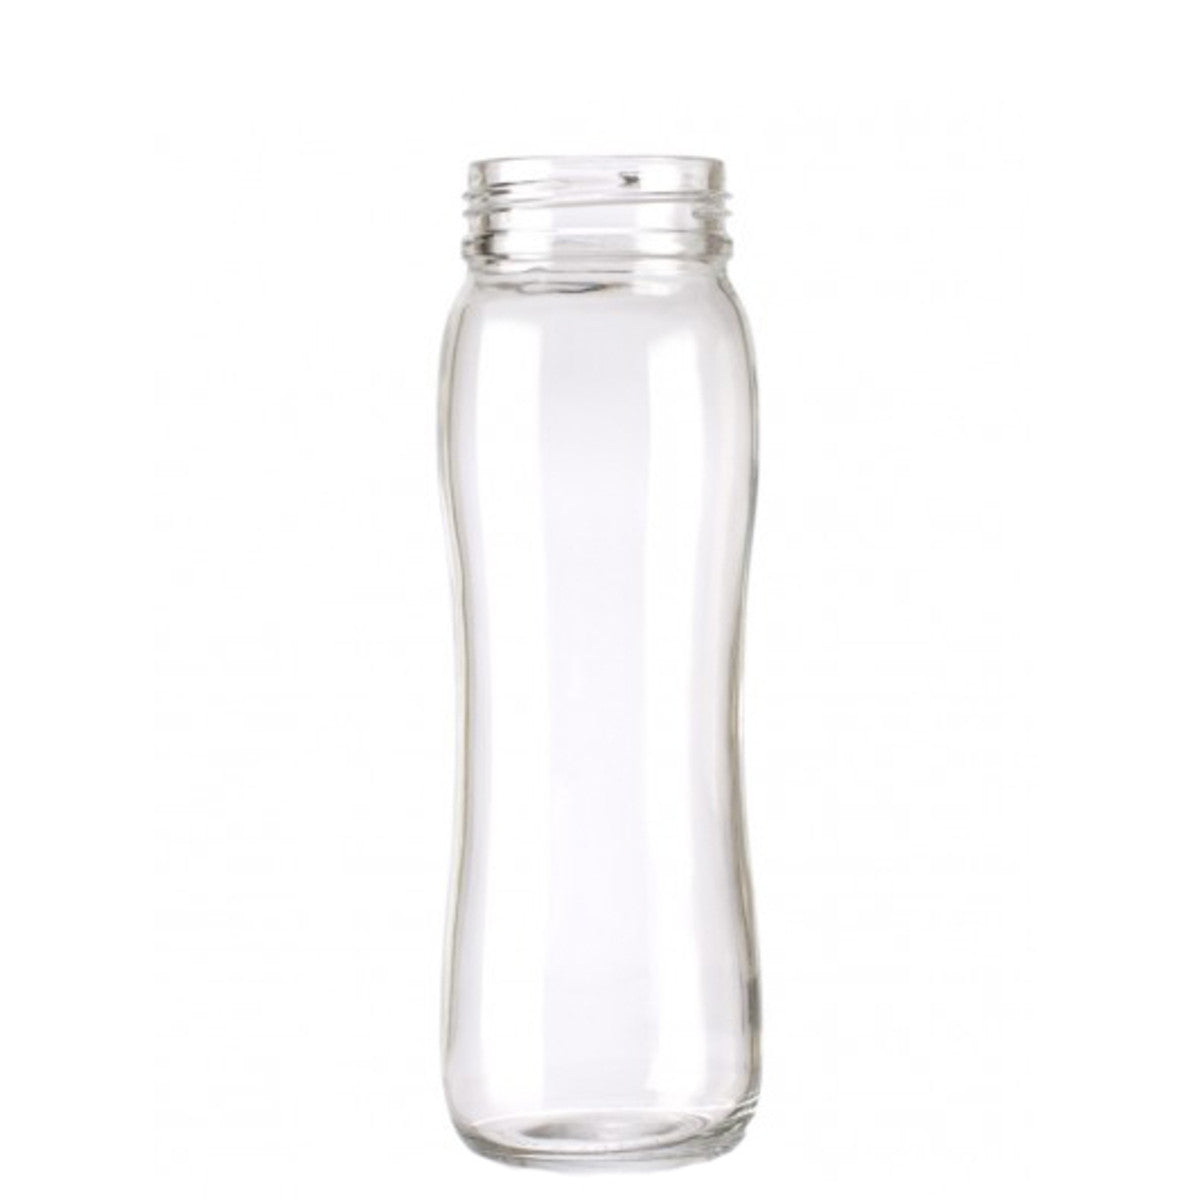 Lifefactory 16 oz Replacement Glass Bottles